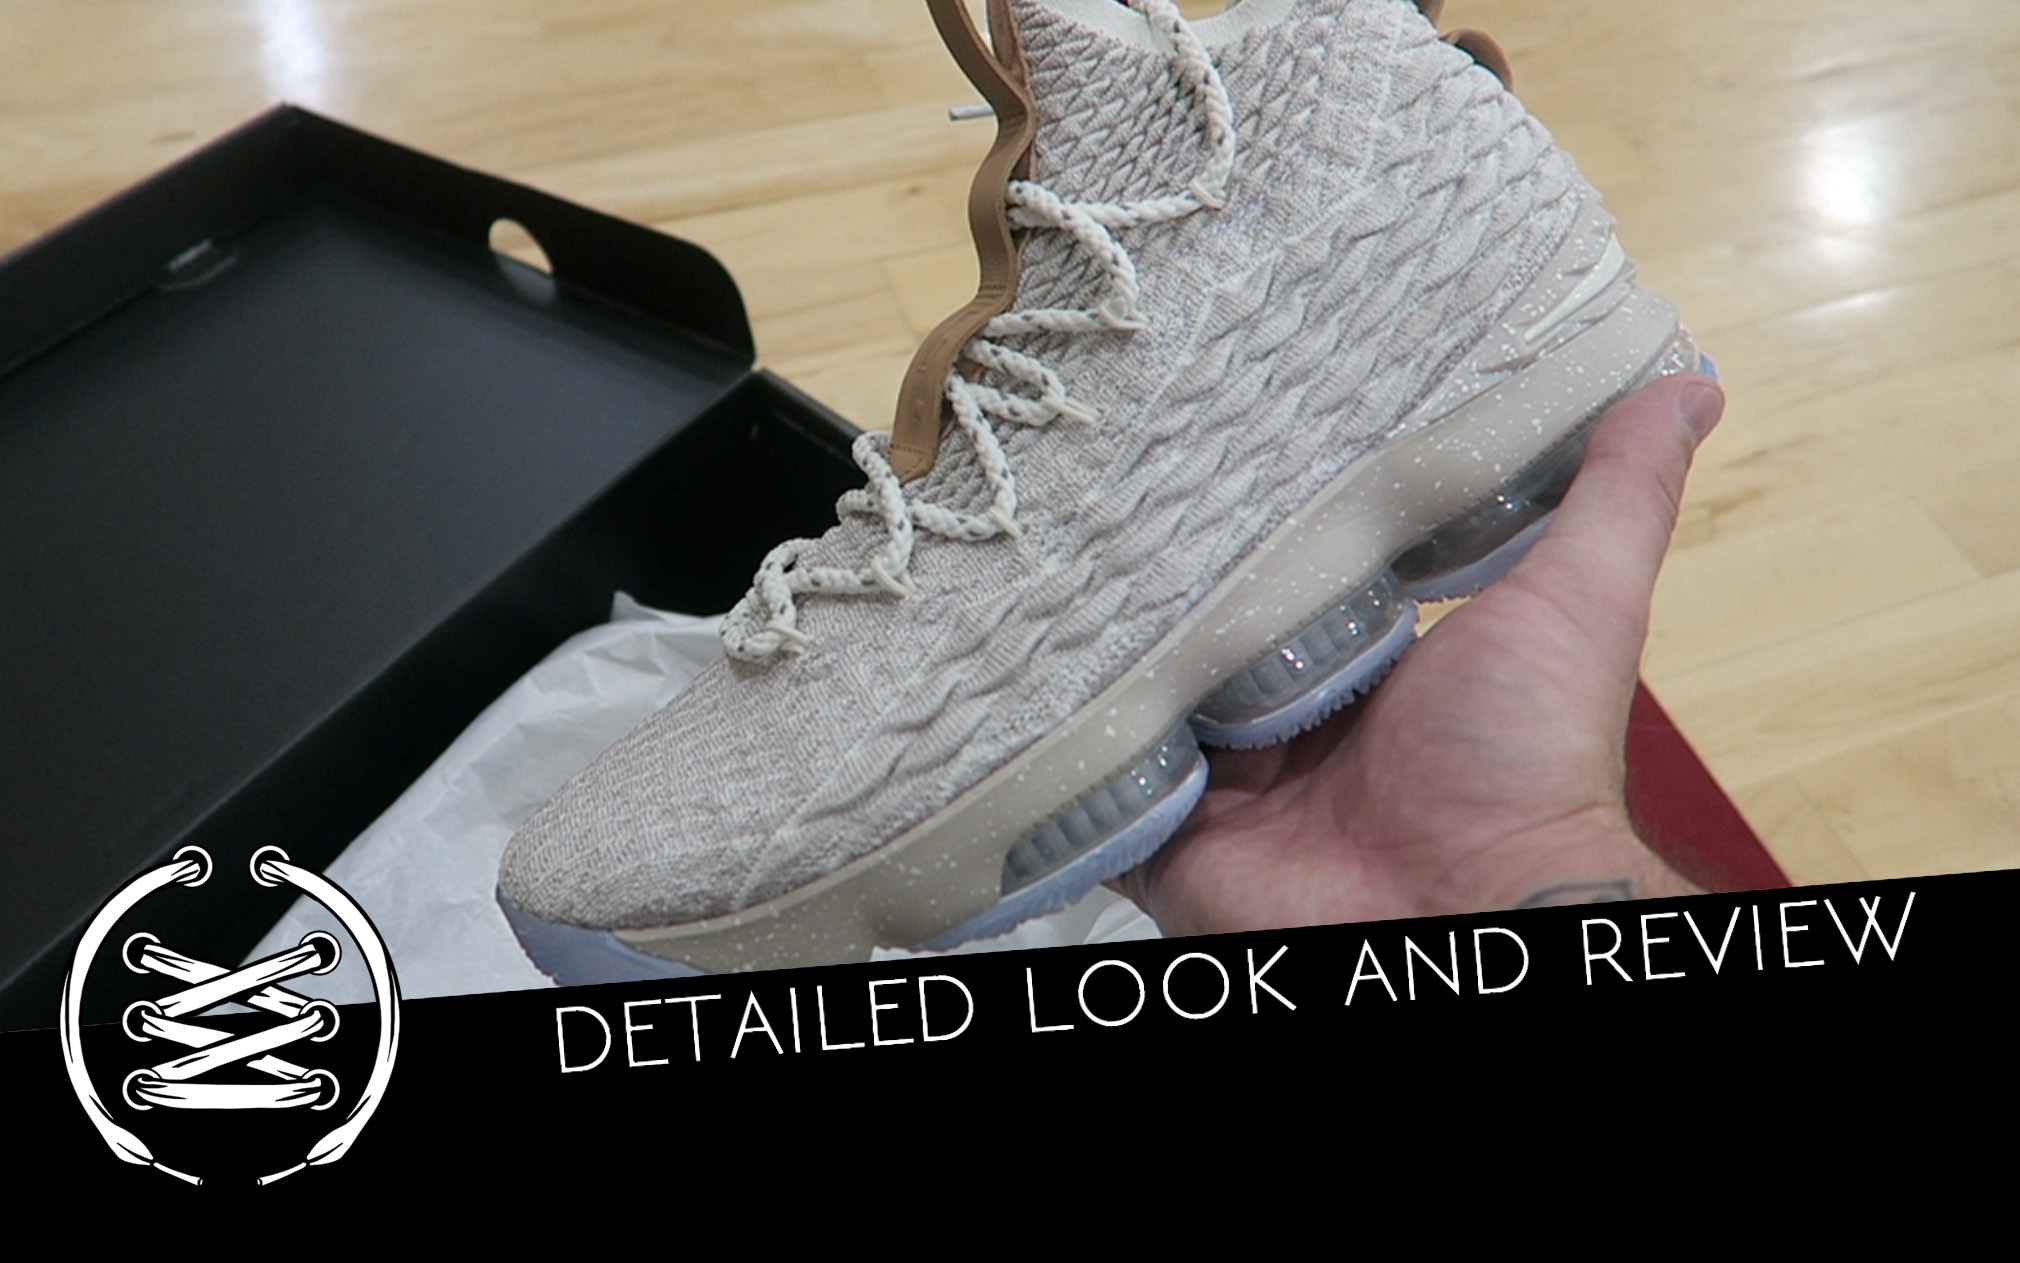 8e6737abb70 lebron 15 Archives - Page 3 of 3 - WearTesters